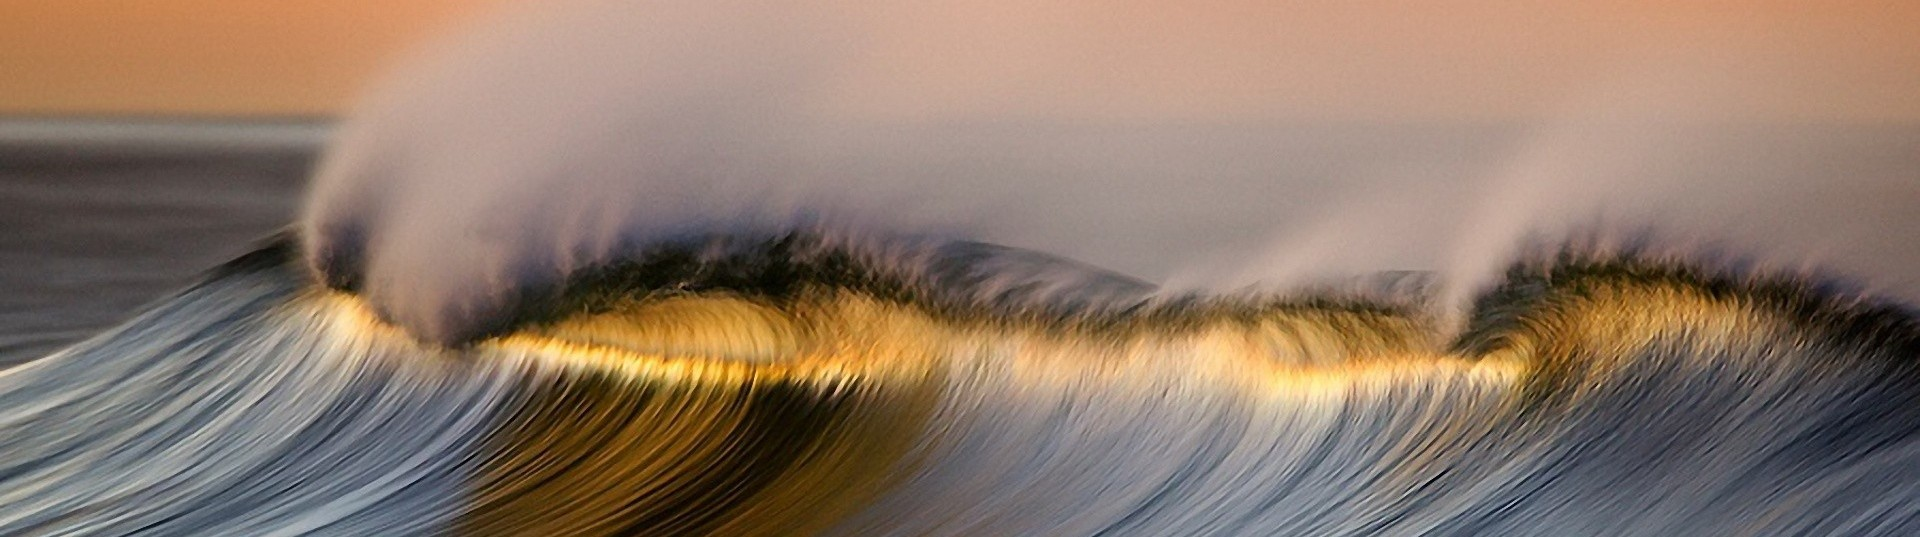 golden-wave-david-orias-hd-wallpaper_0-e1426154504298